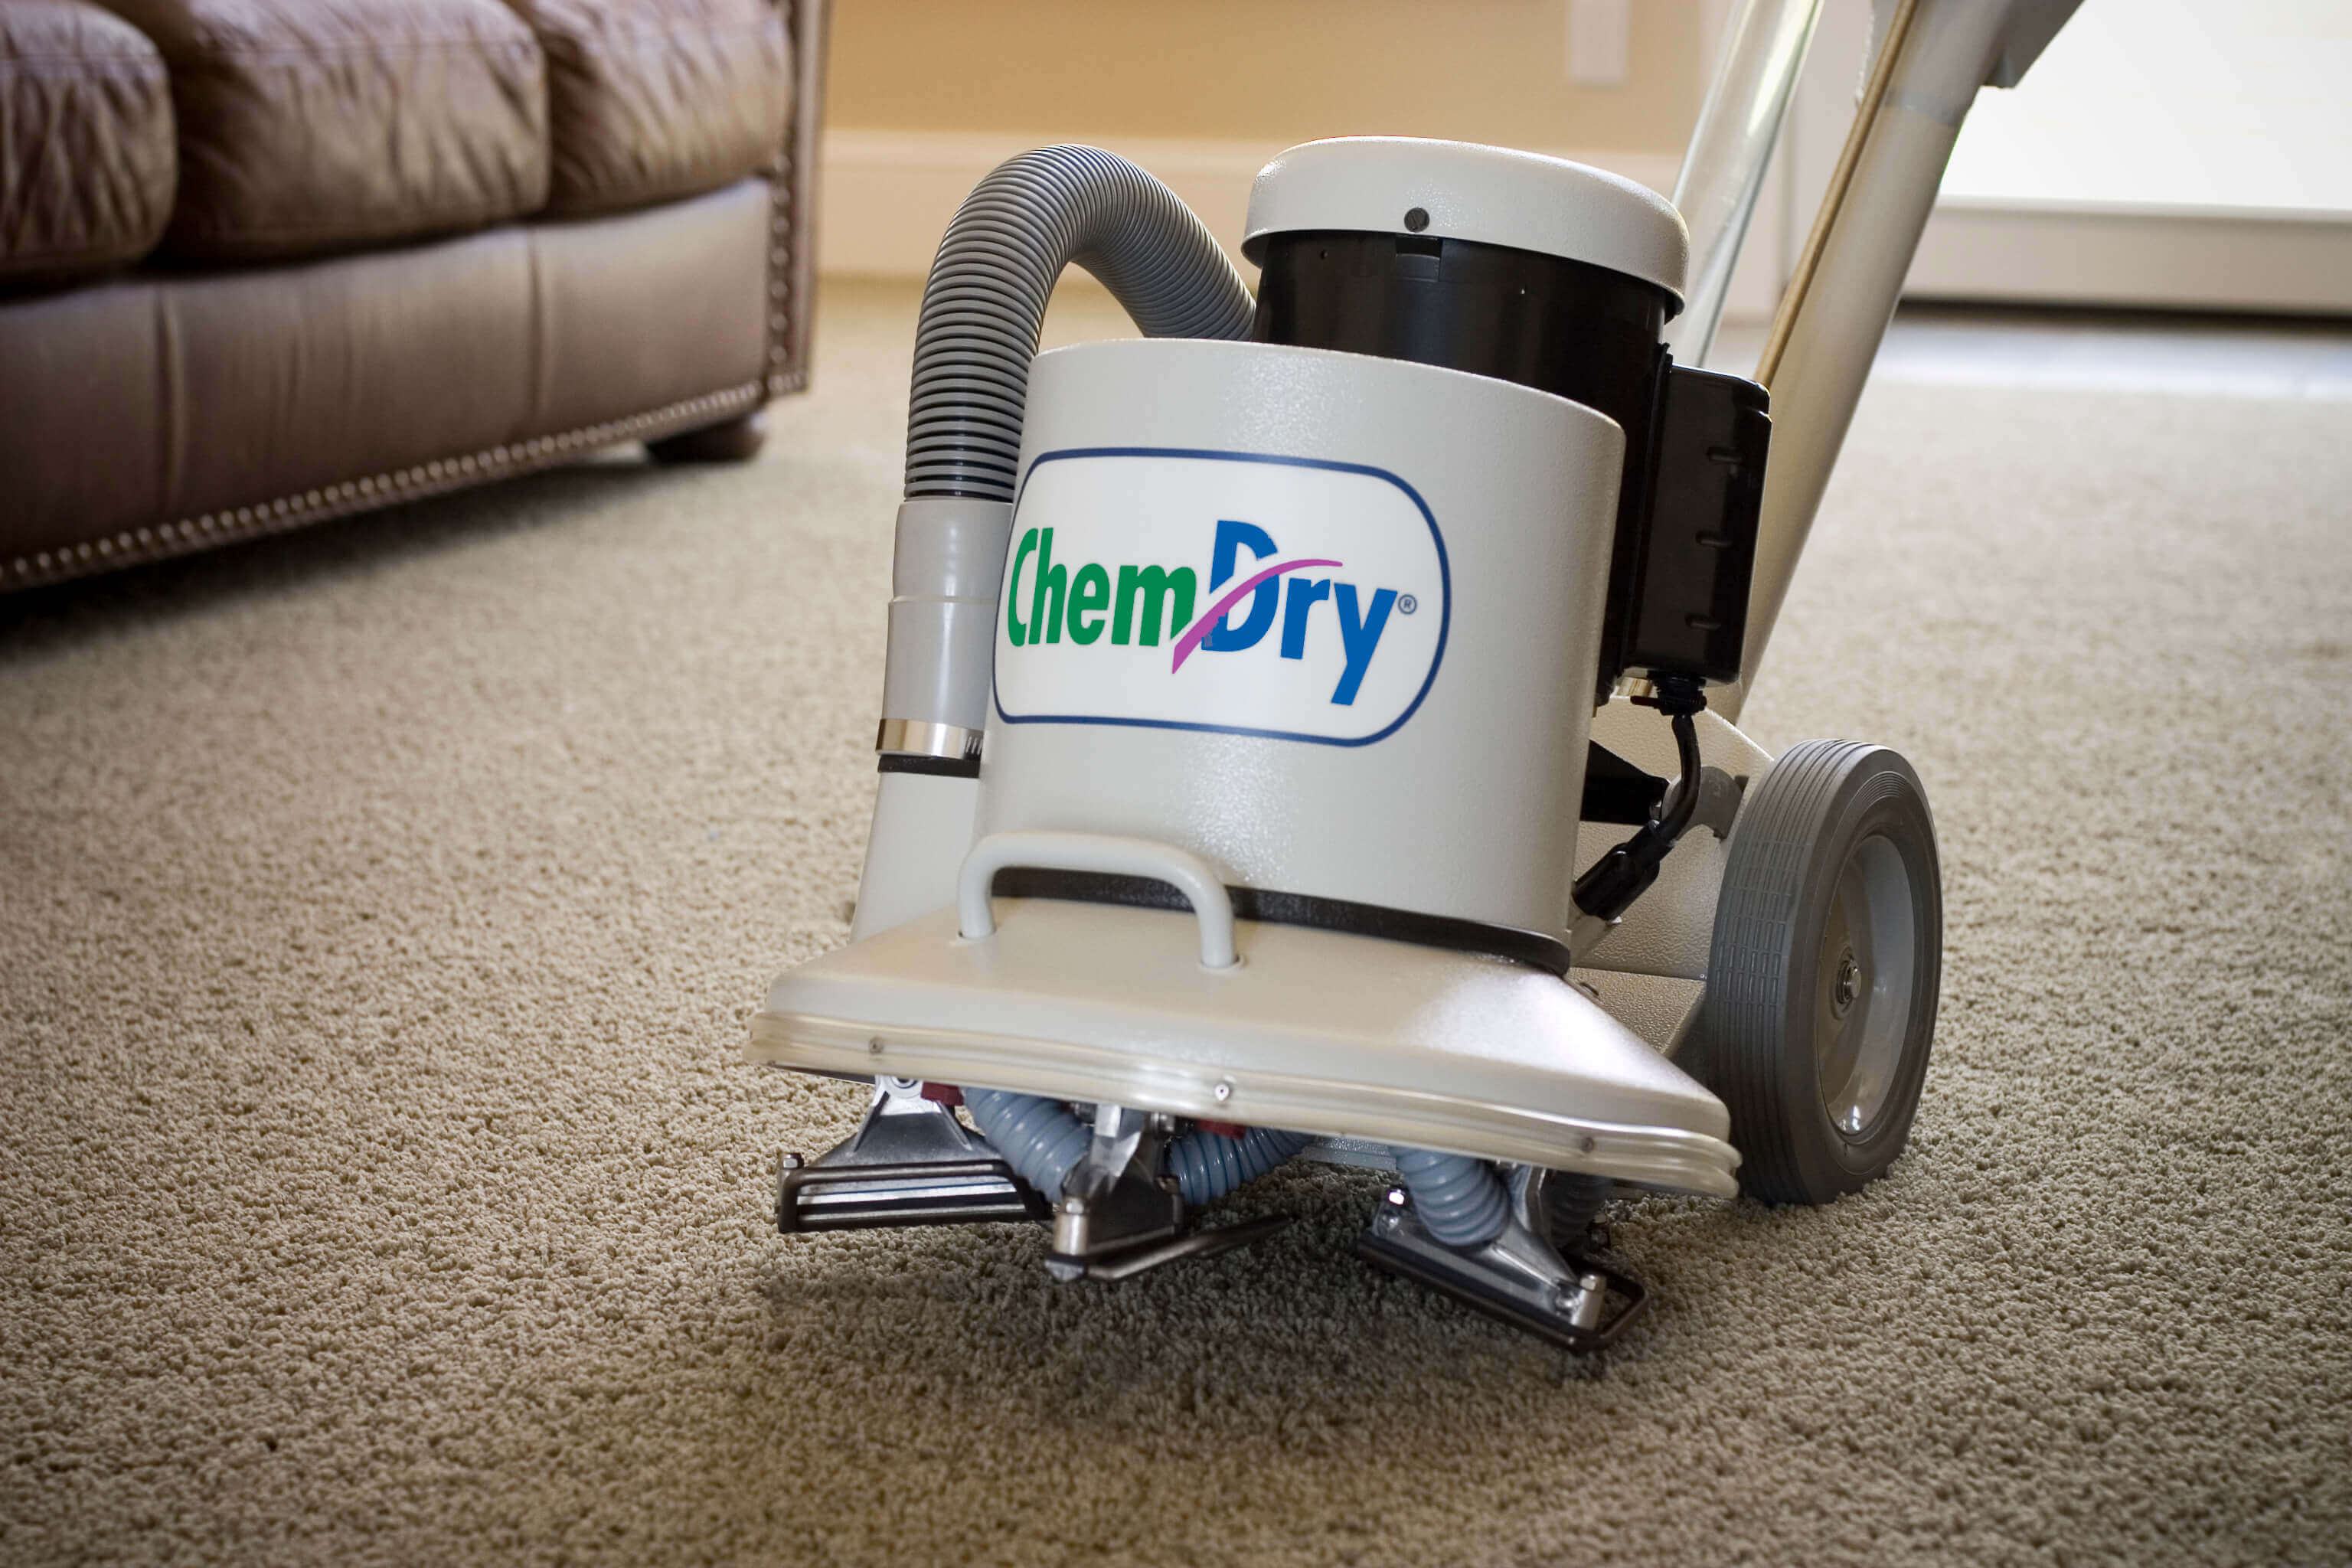 chem-dry sonoma county carpet cleaning